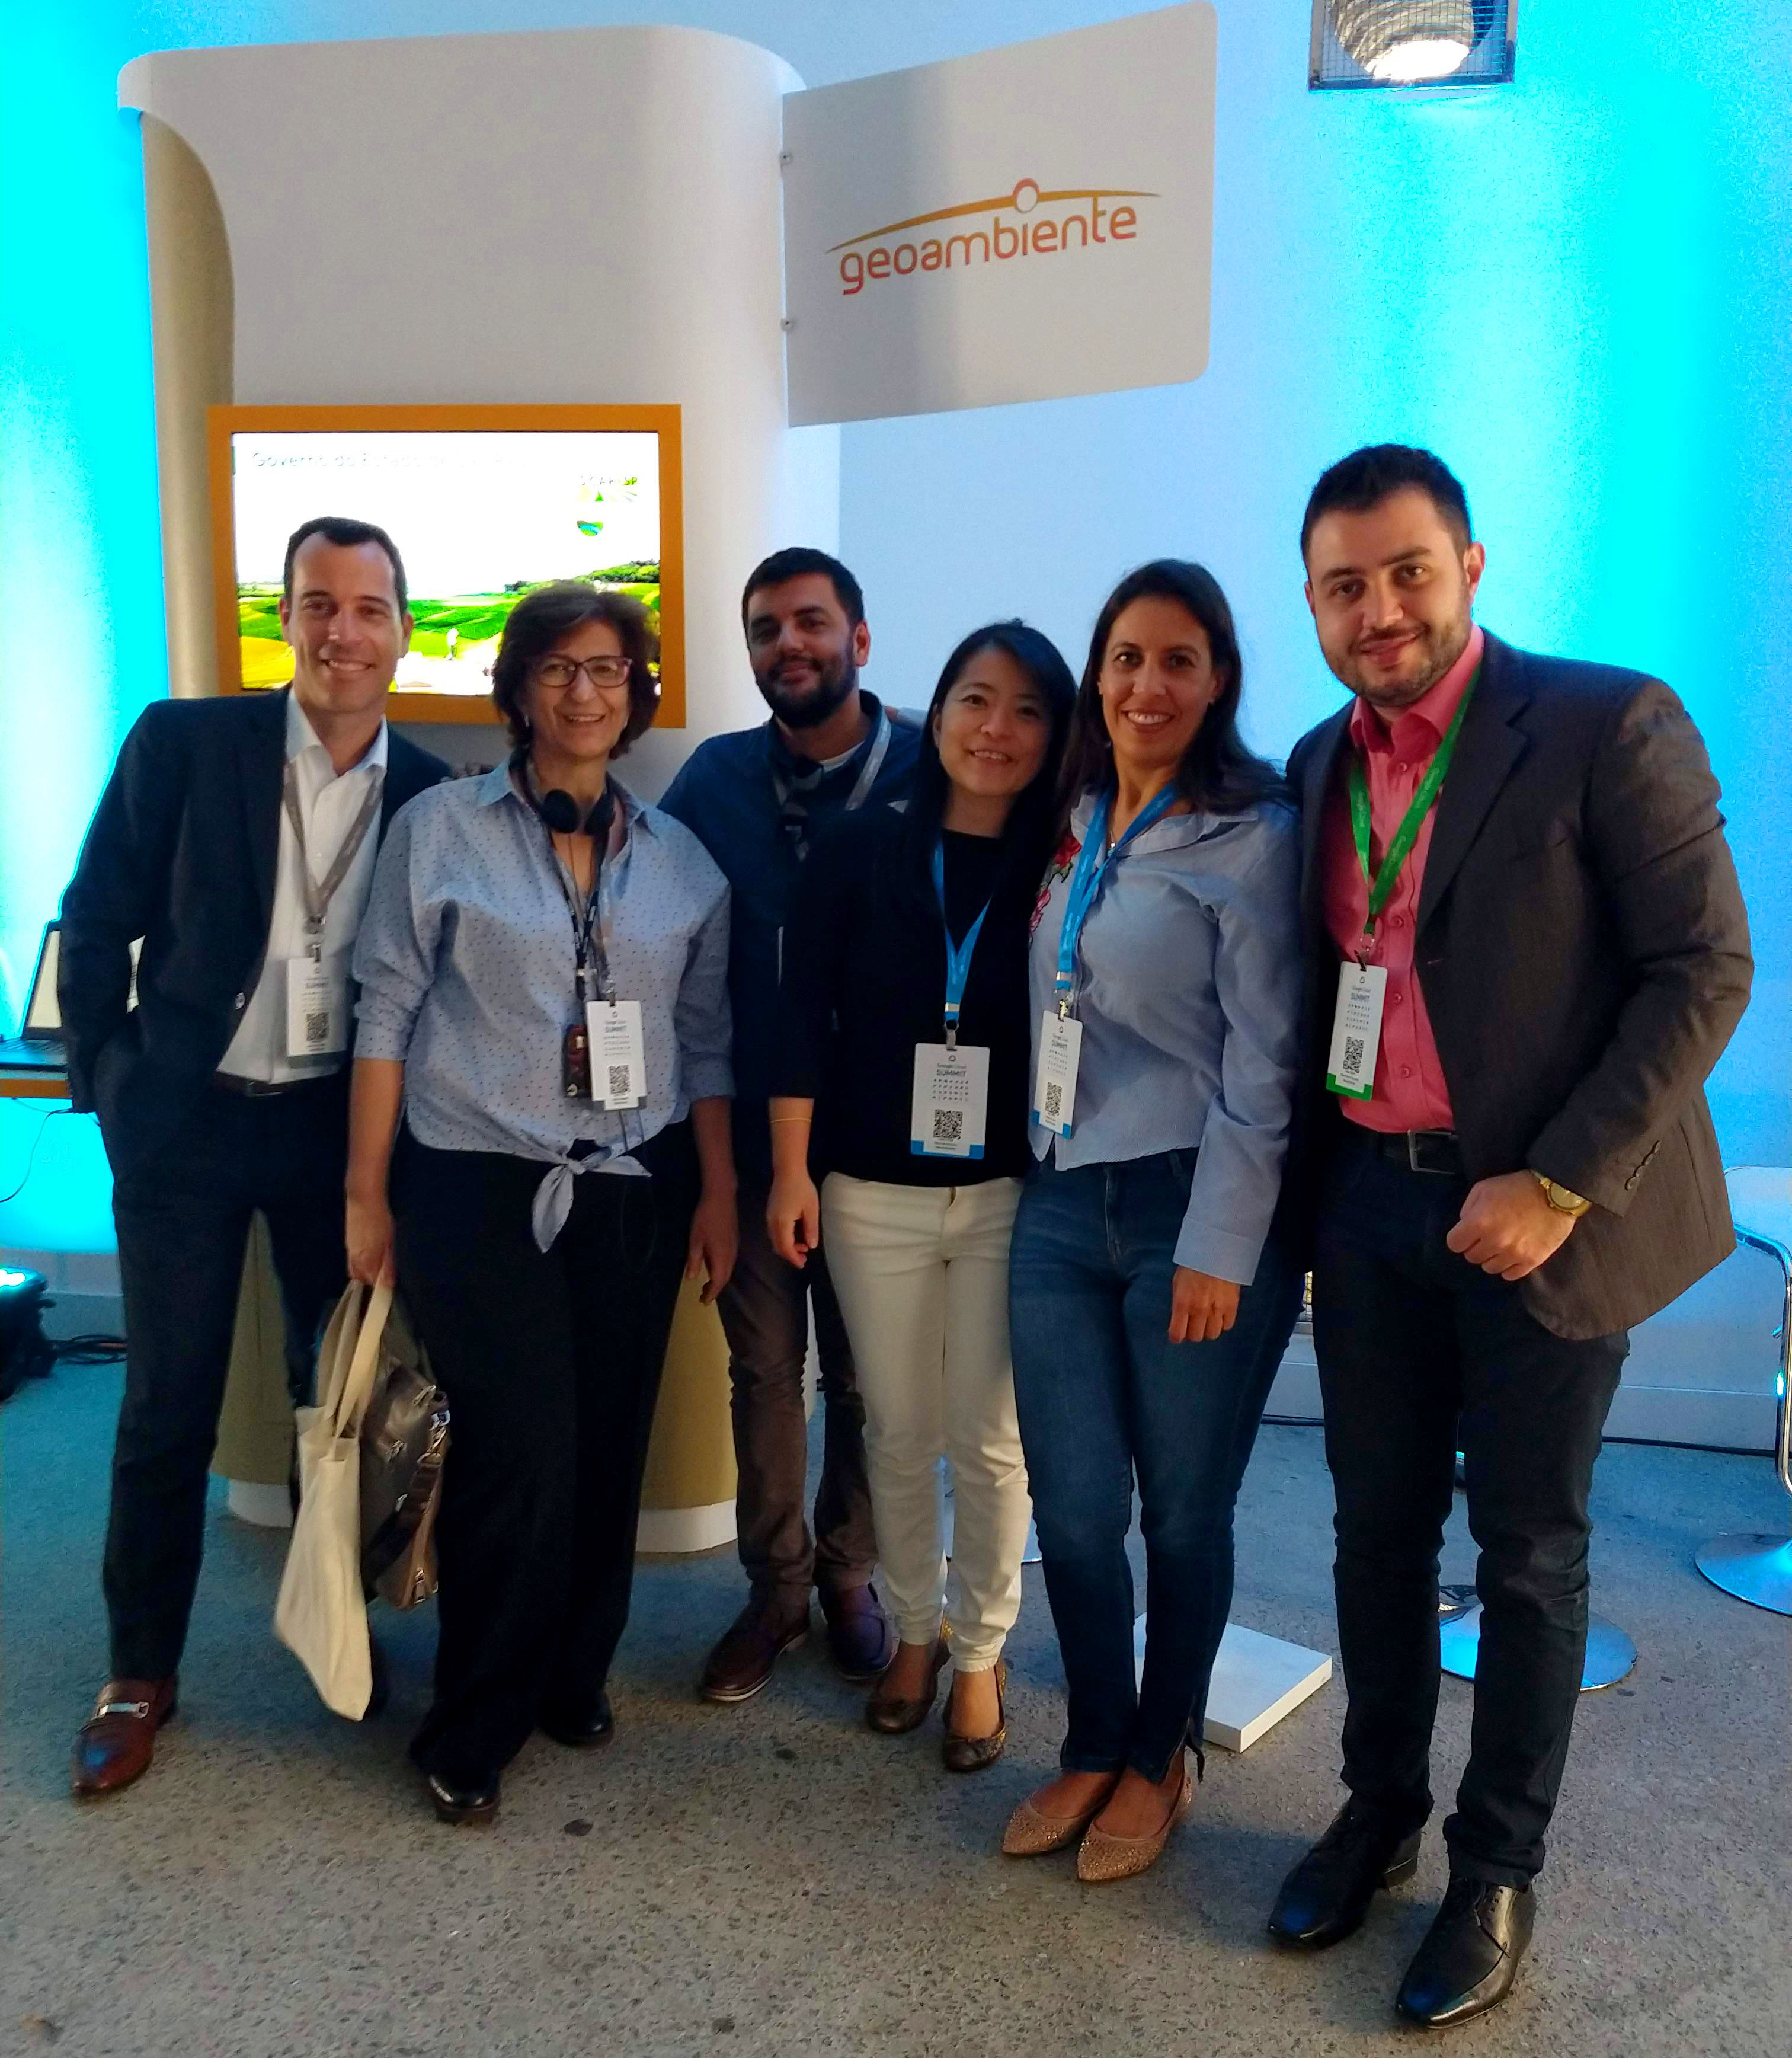 Equipe Geoambiente - Google Cloud Summit 2018 - 06/12/2018